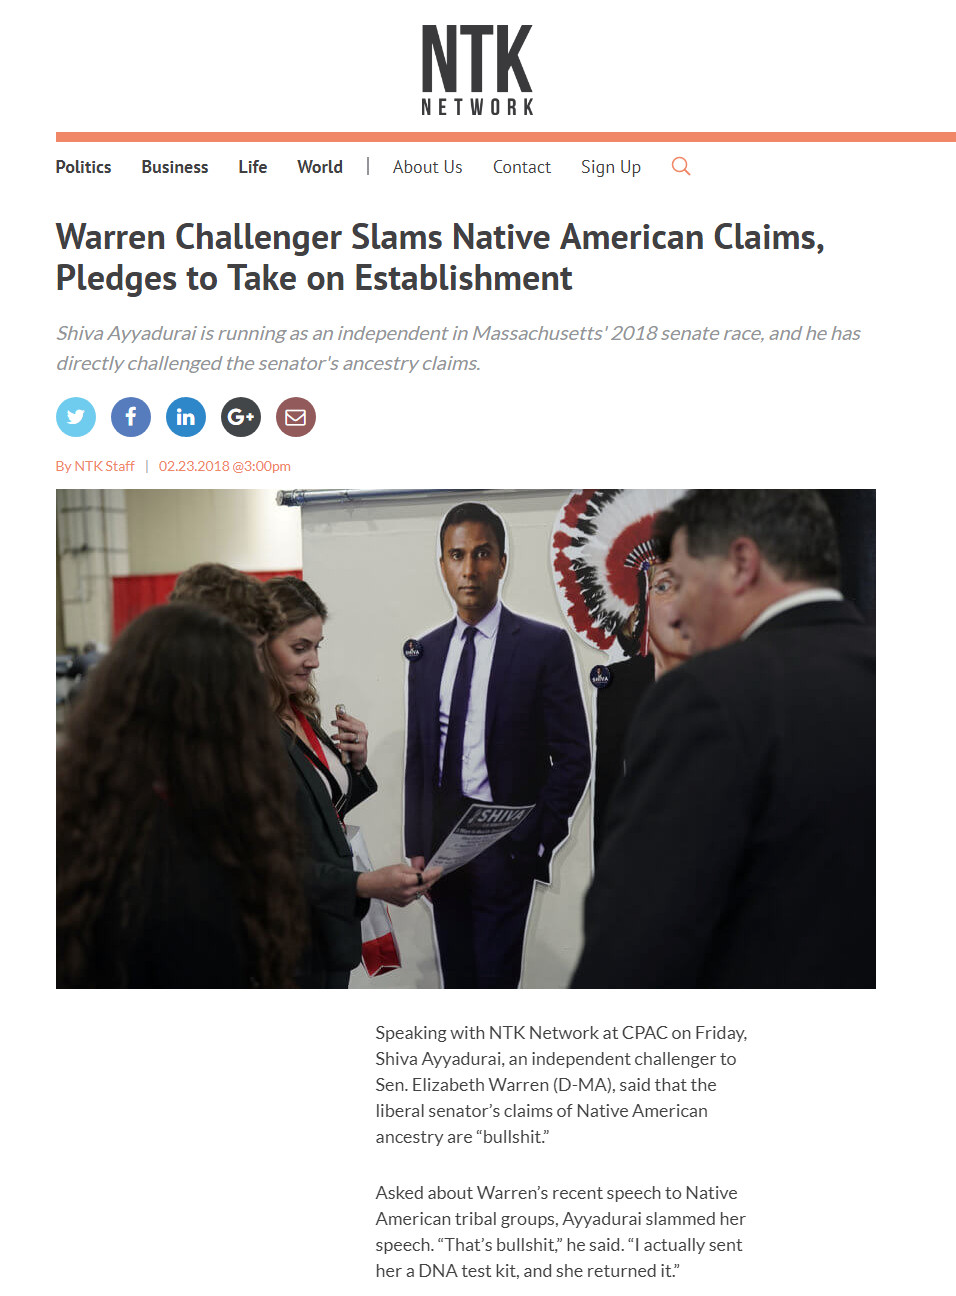 Warren Challenger Slams Native American Claims, Pledges To Take On Establishment